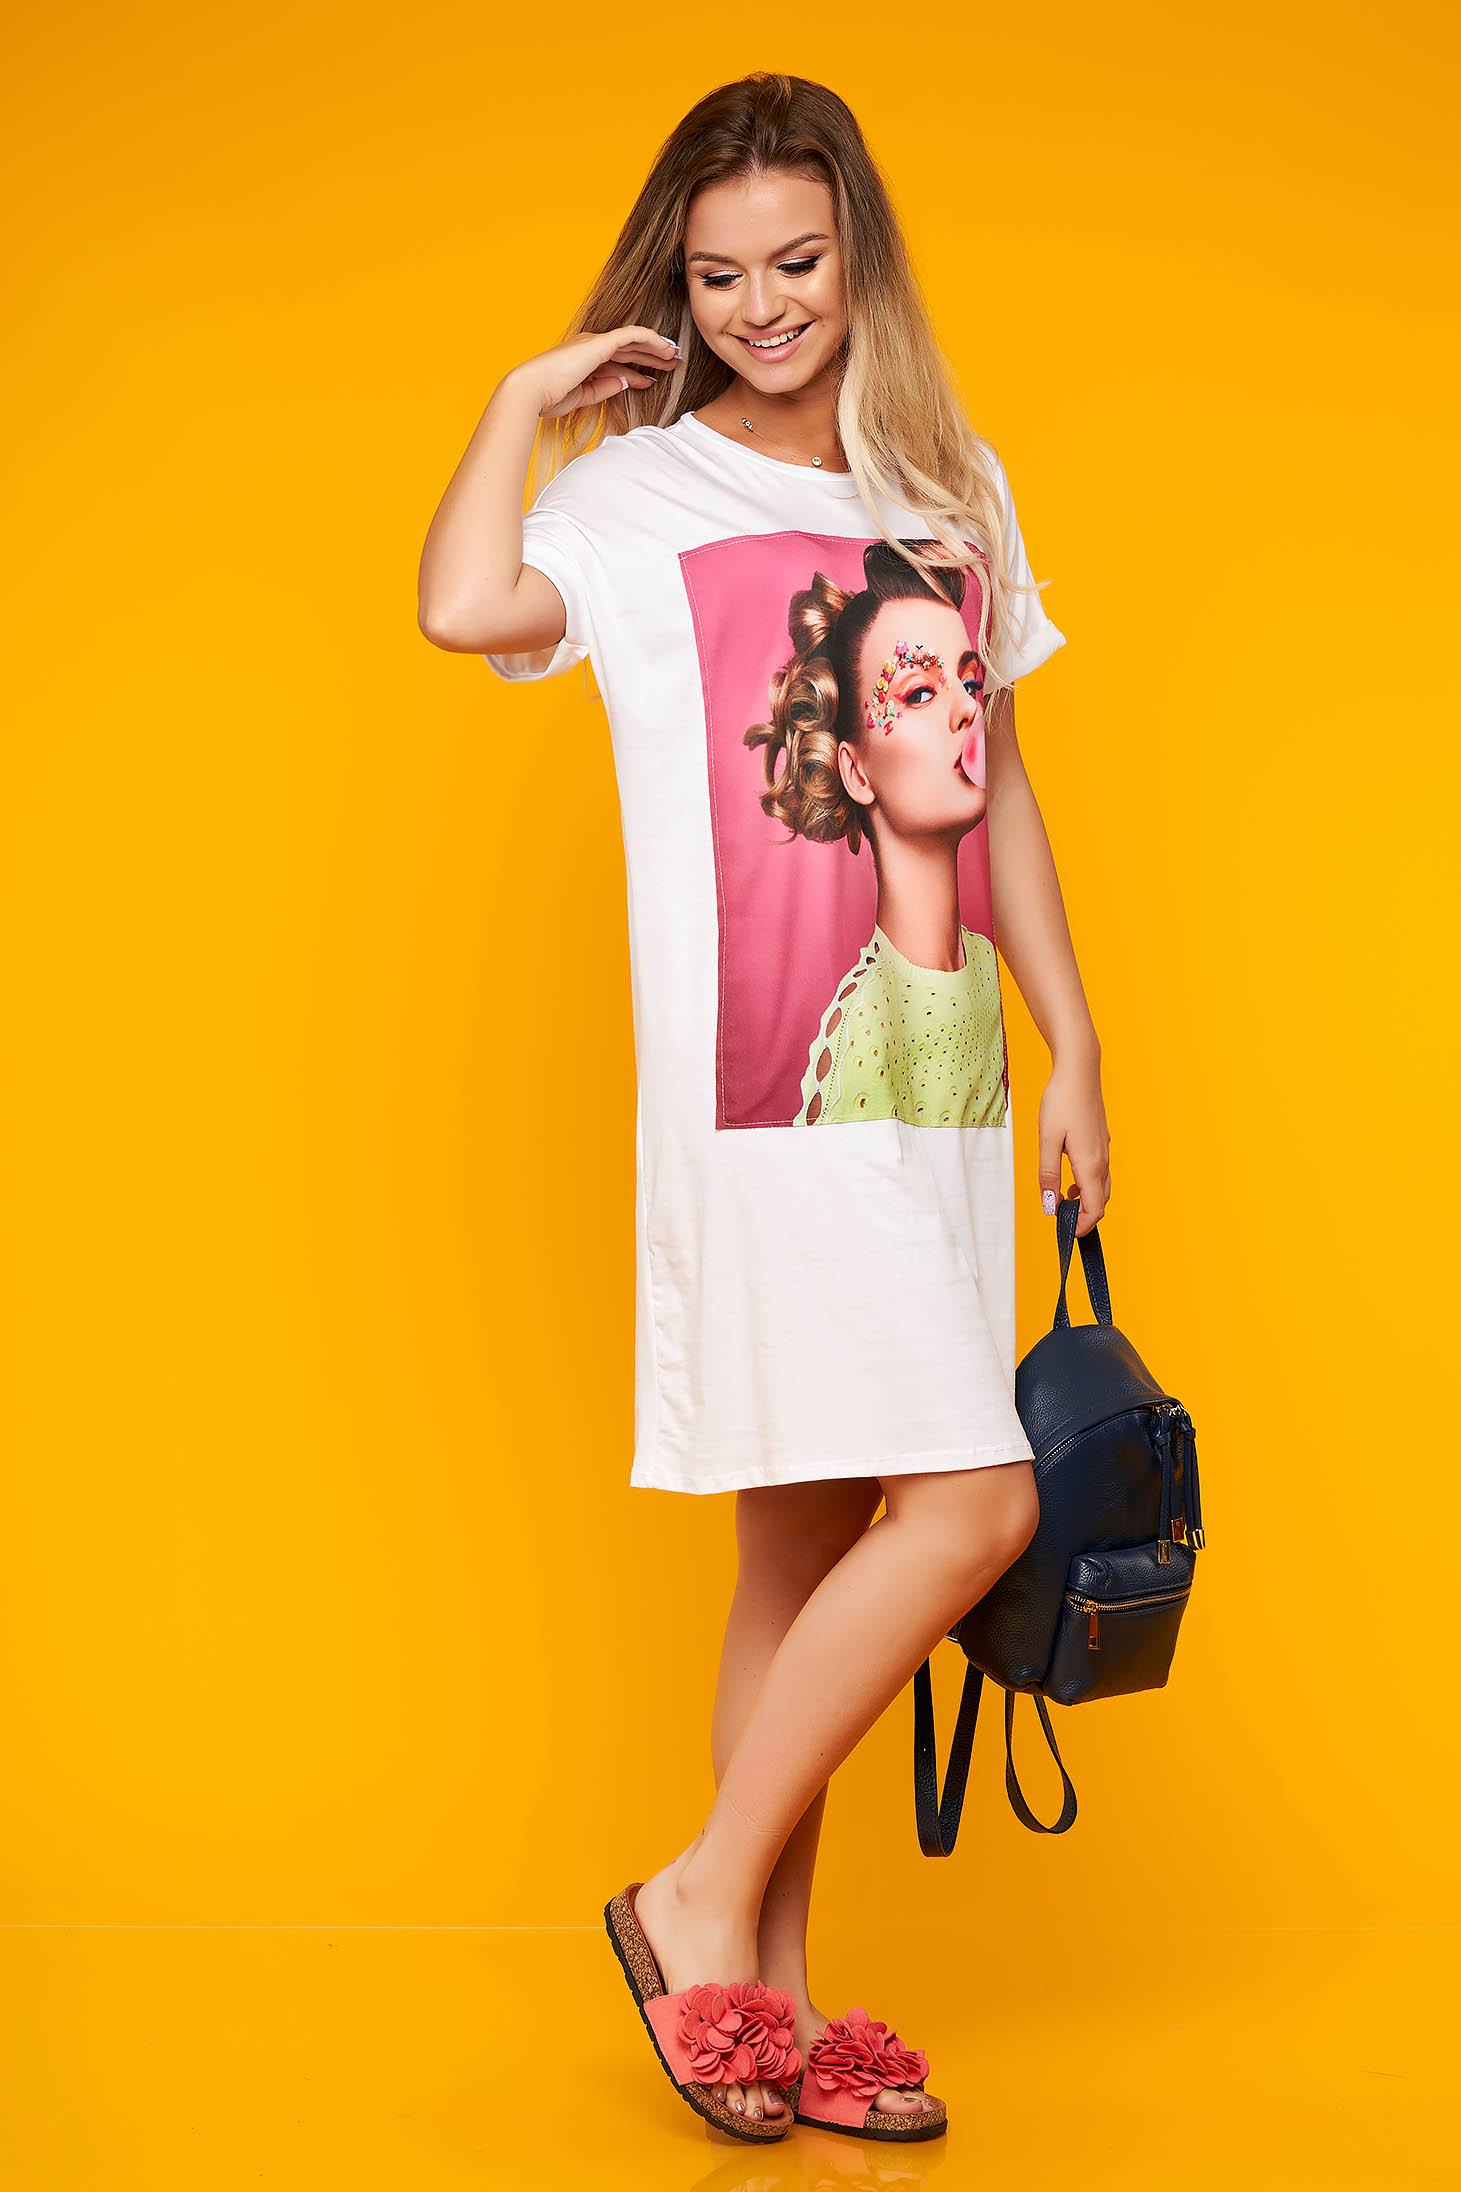 White dress casual short cut cotton with graphic details